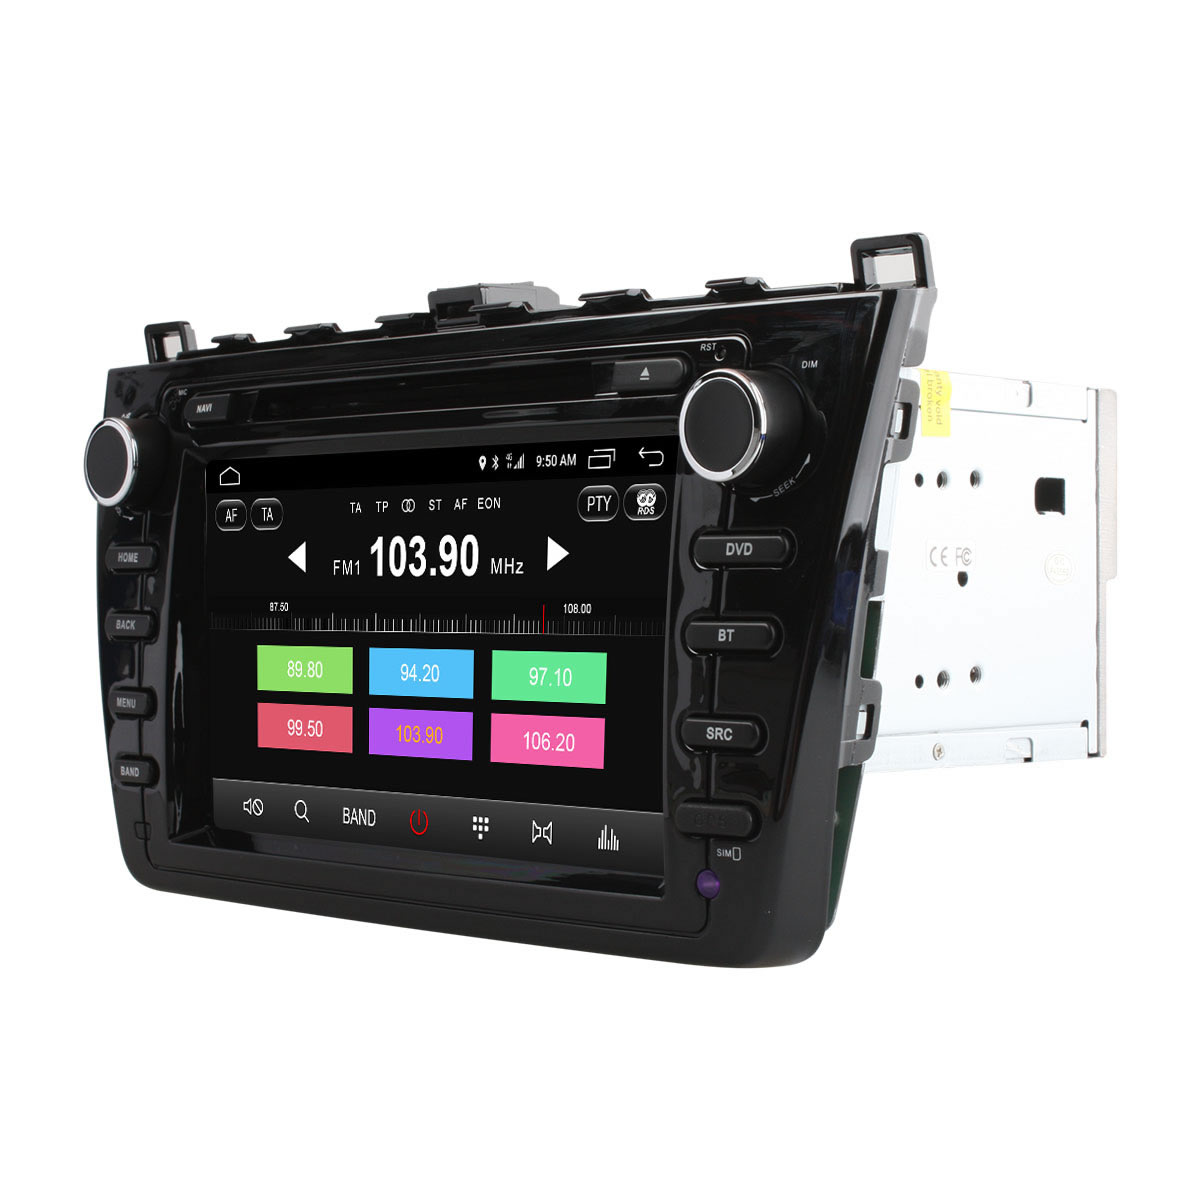 Ownice C500 8 Android 6 0 Quad Core For Mazda 6 Car DVD Player with GPS ownice c500 8\